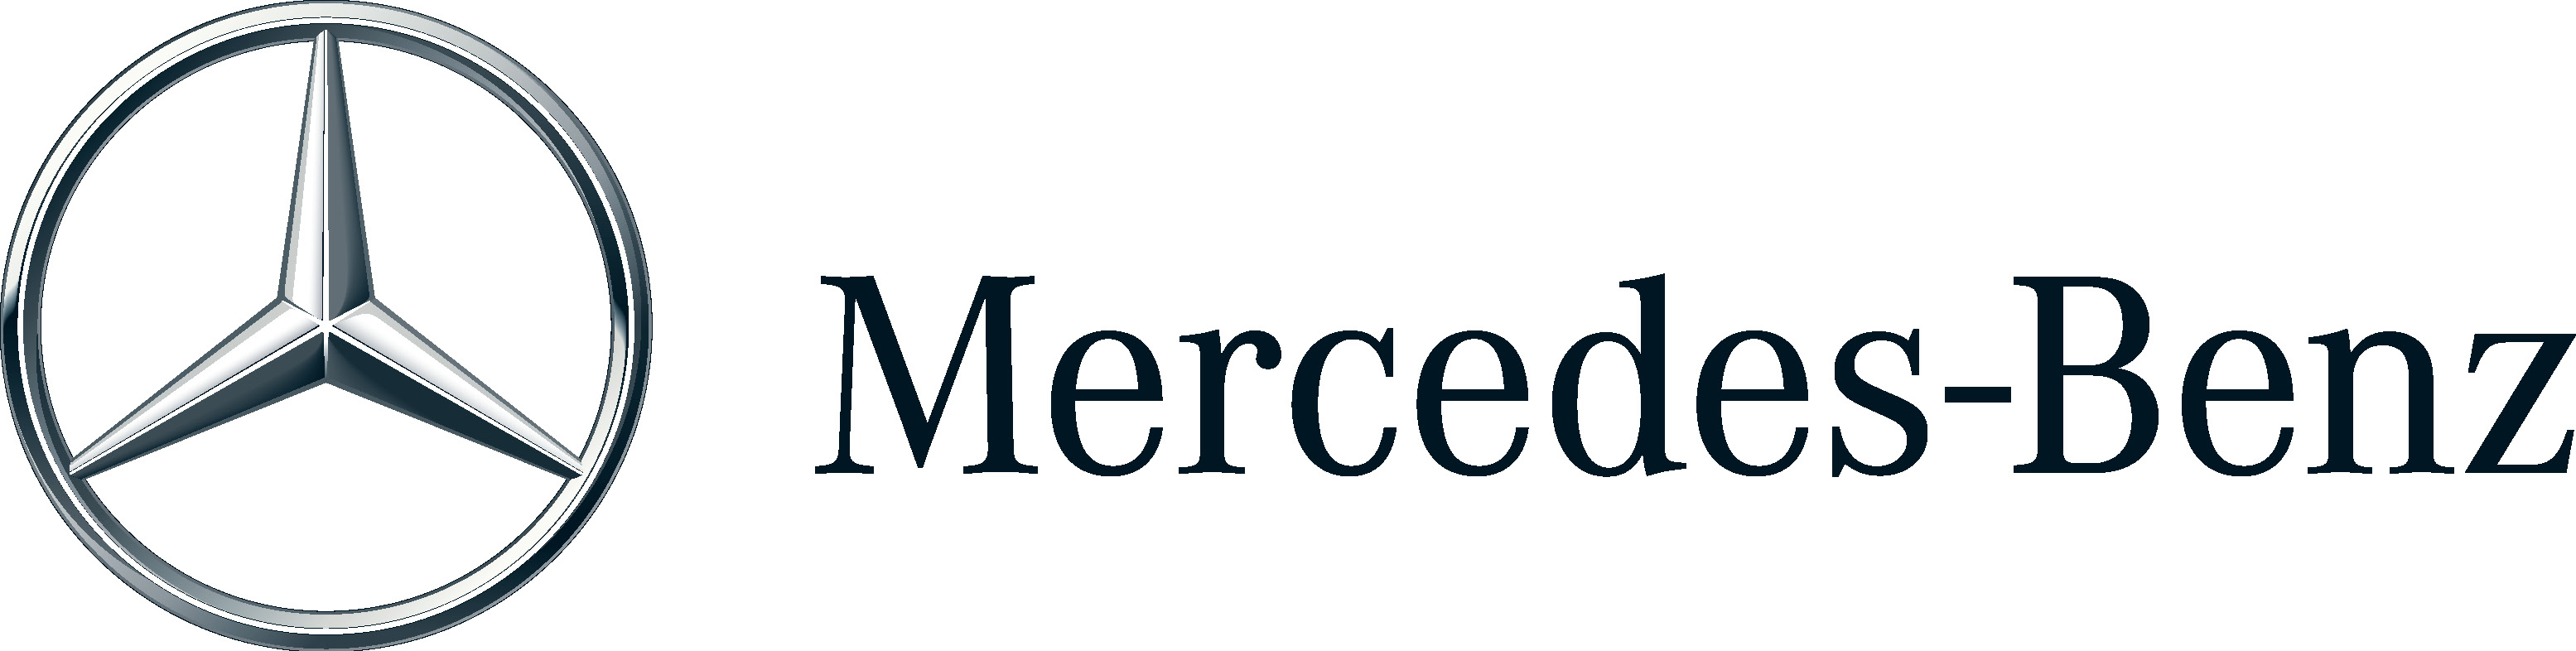 Mercedes-Benz logo 5